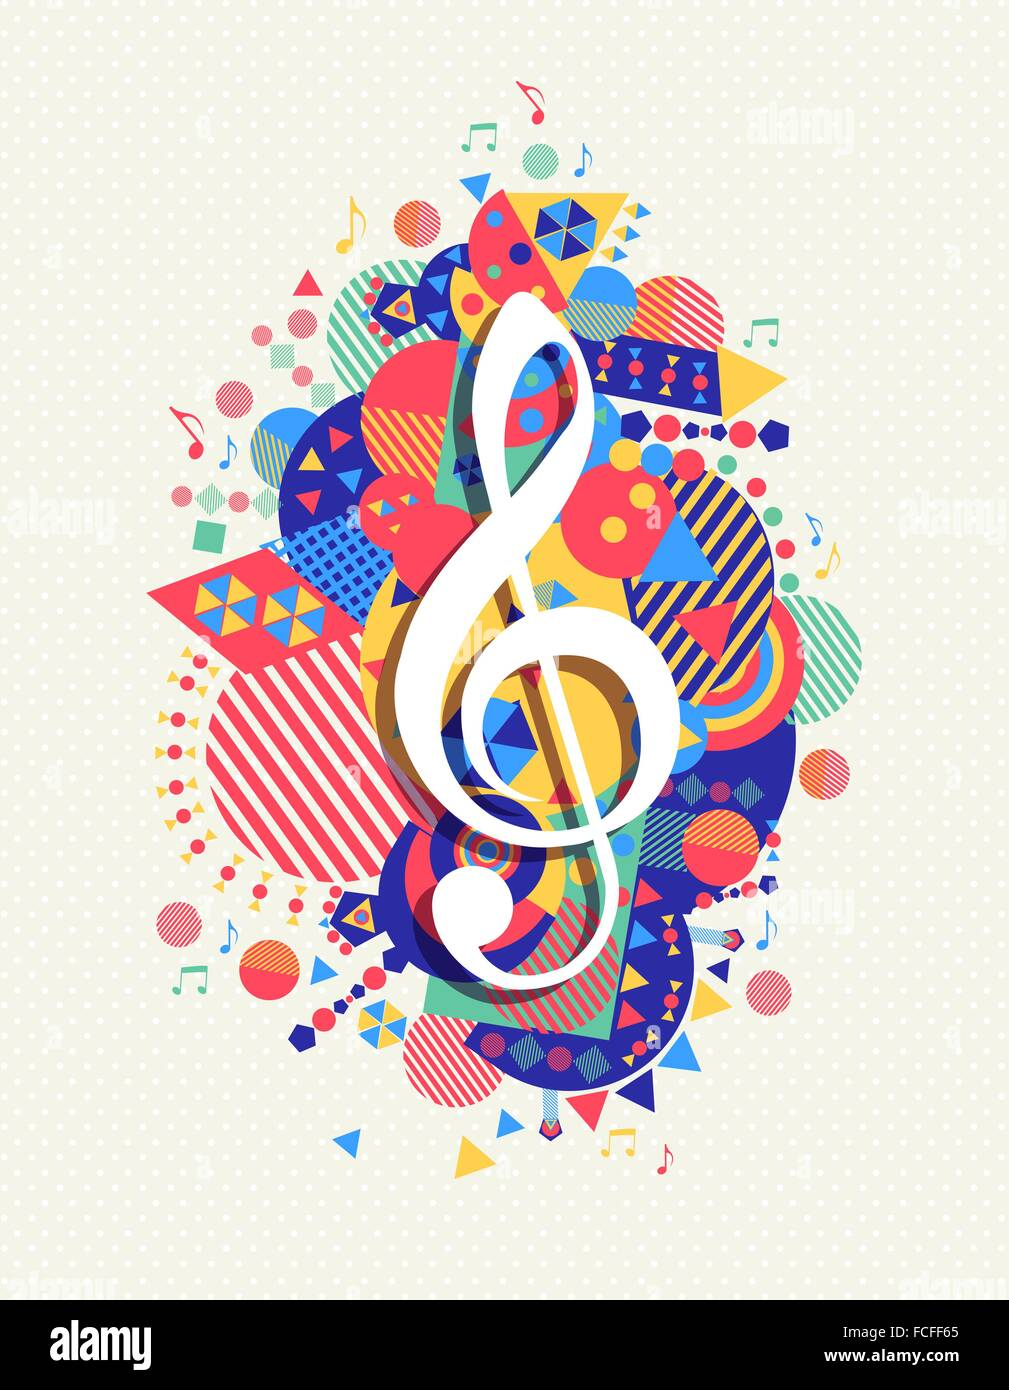 colorful music note design wwwpixsharkcom images